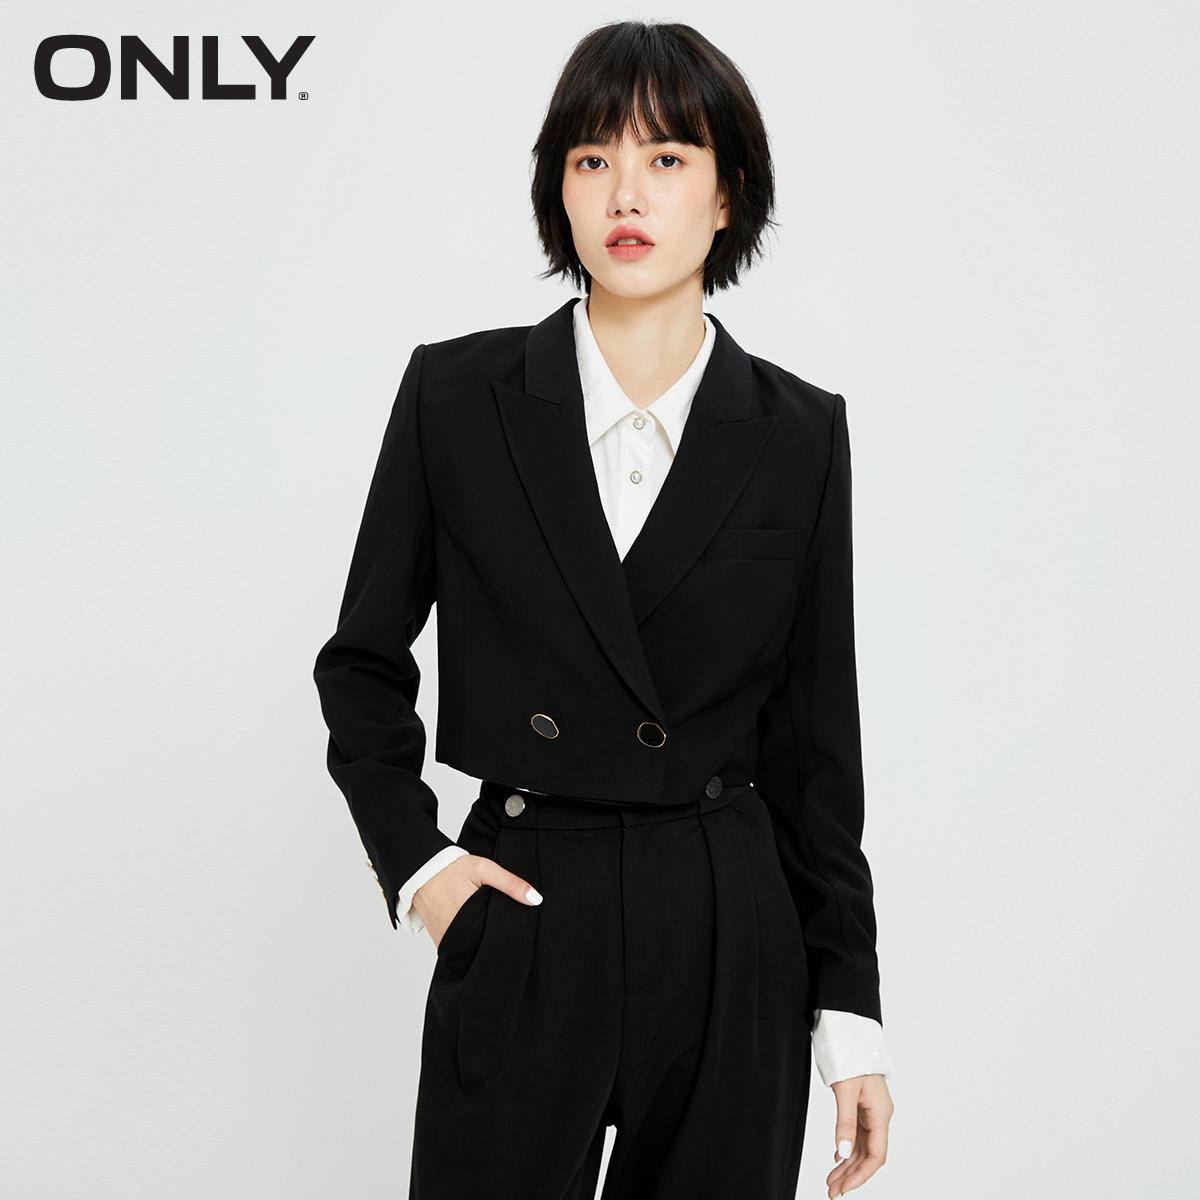 ONLY2021 Summer new short suit jacket job design sexy small suits women 121208004